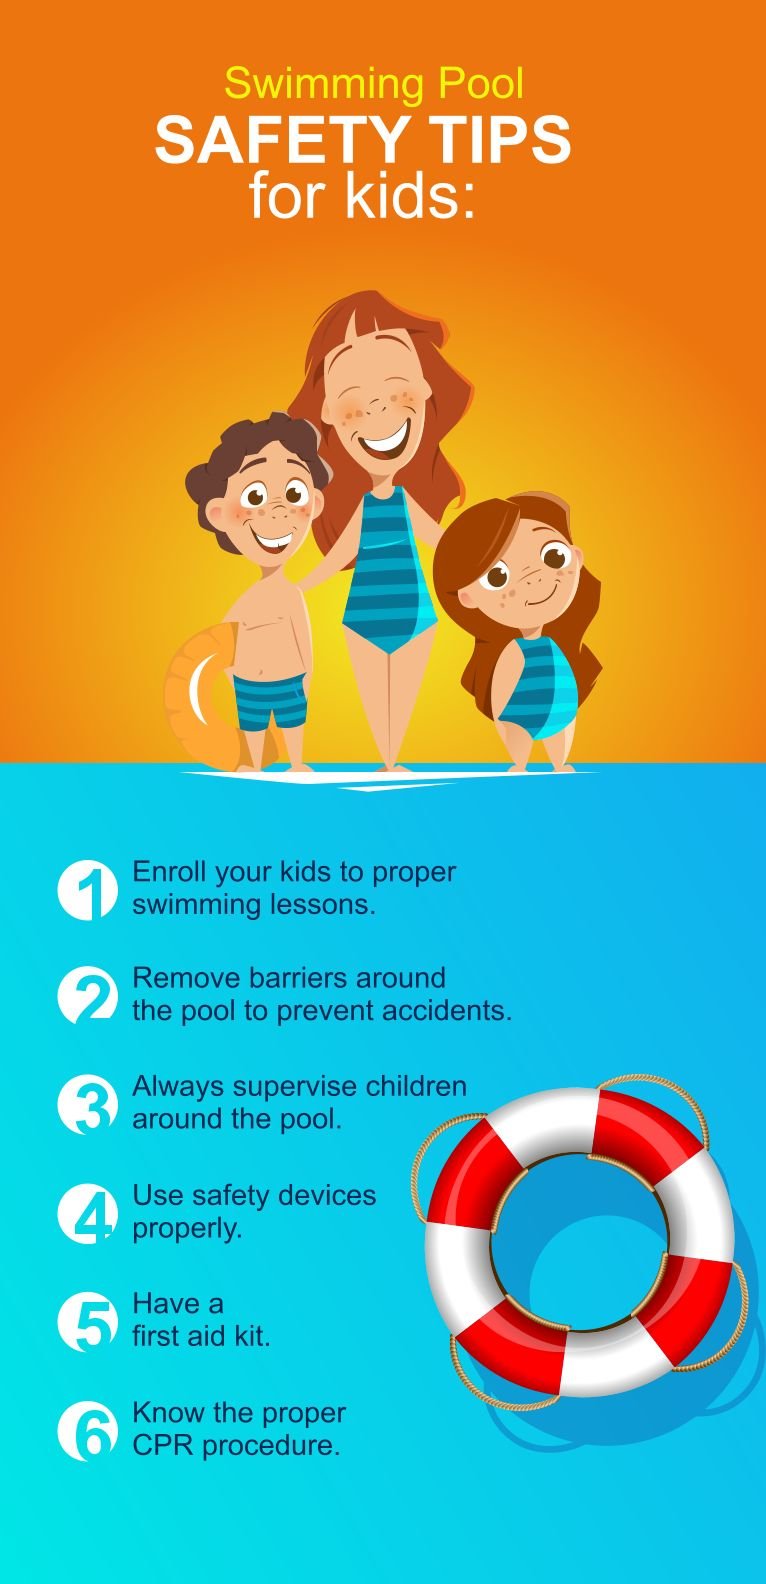 Swimming Pool Safety Tips For Kids. Visit www